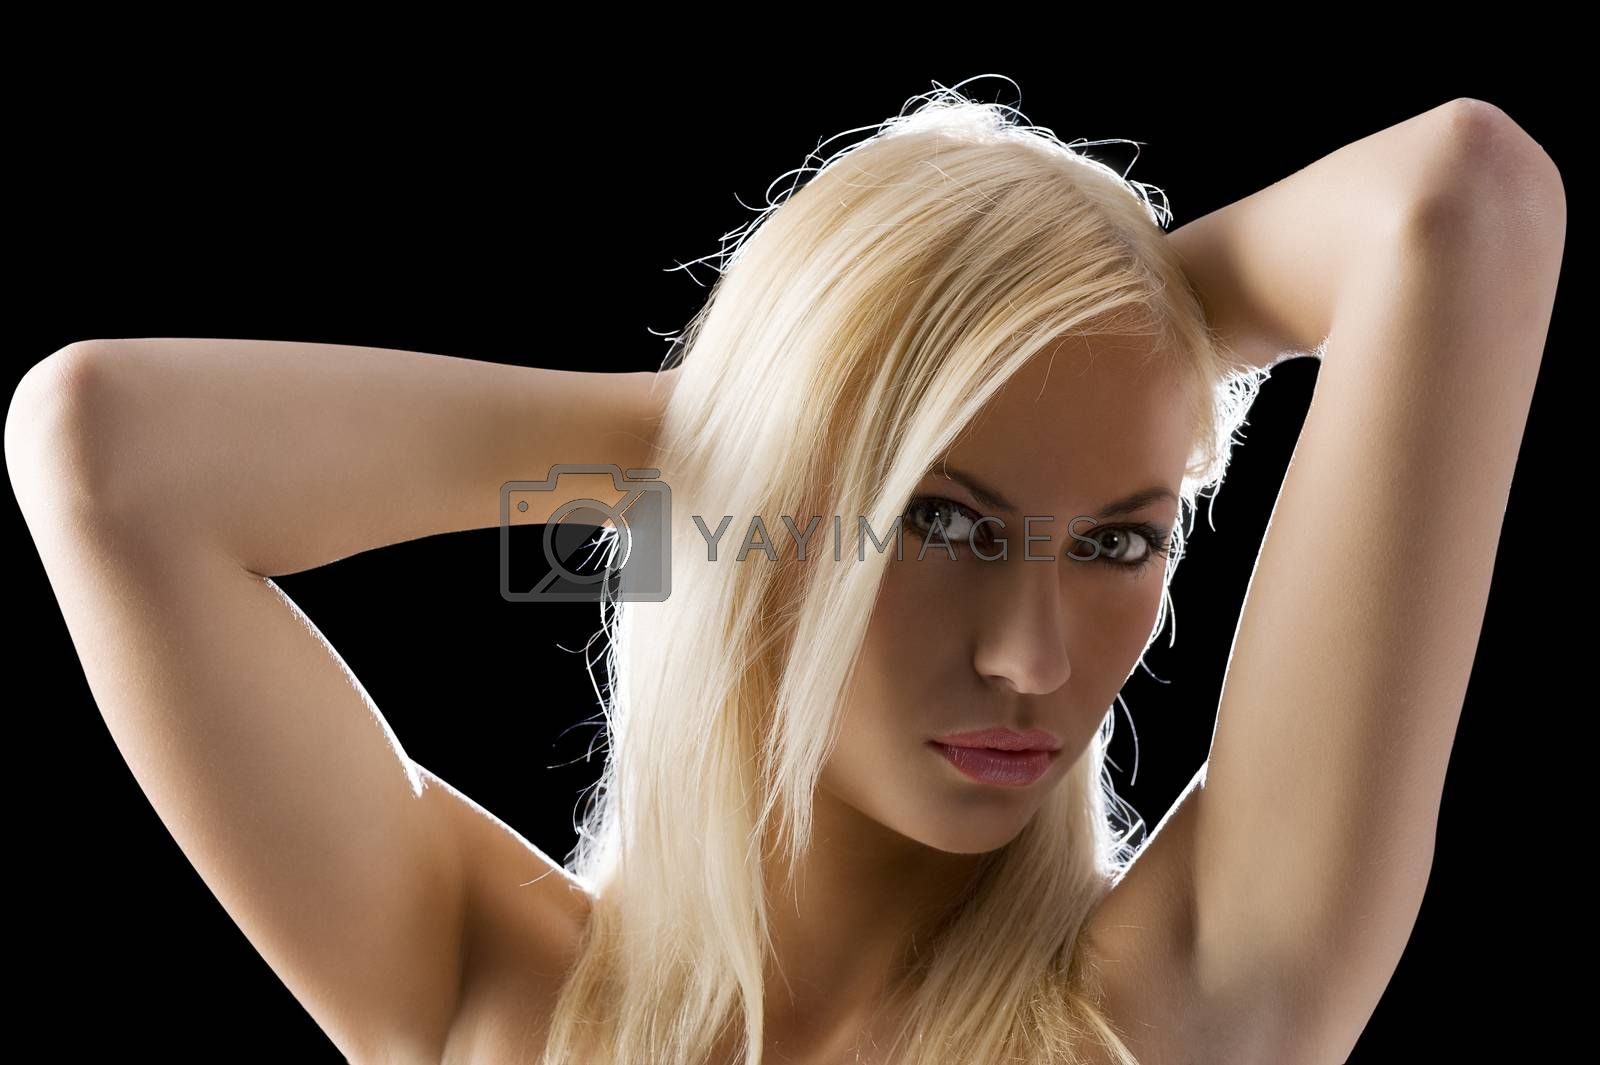 Royalty free image of blond sexy woman by fotoCD